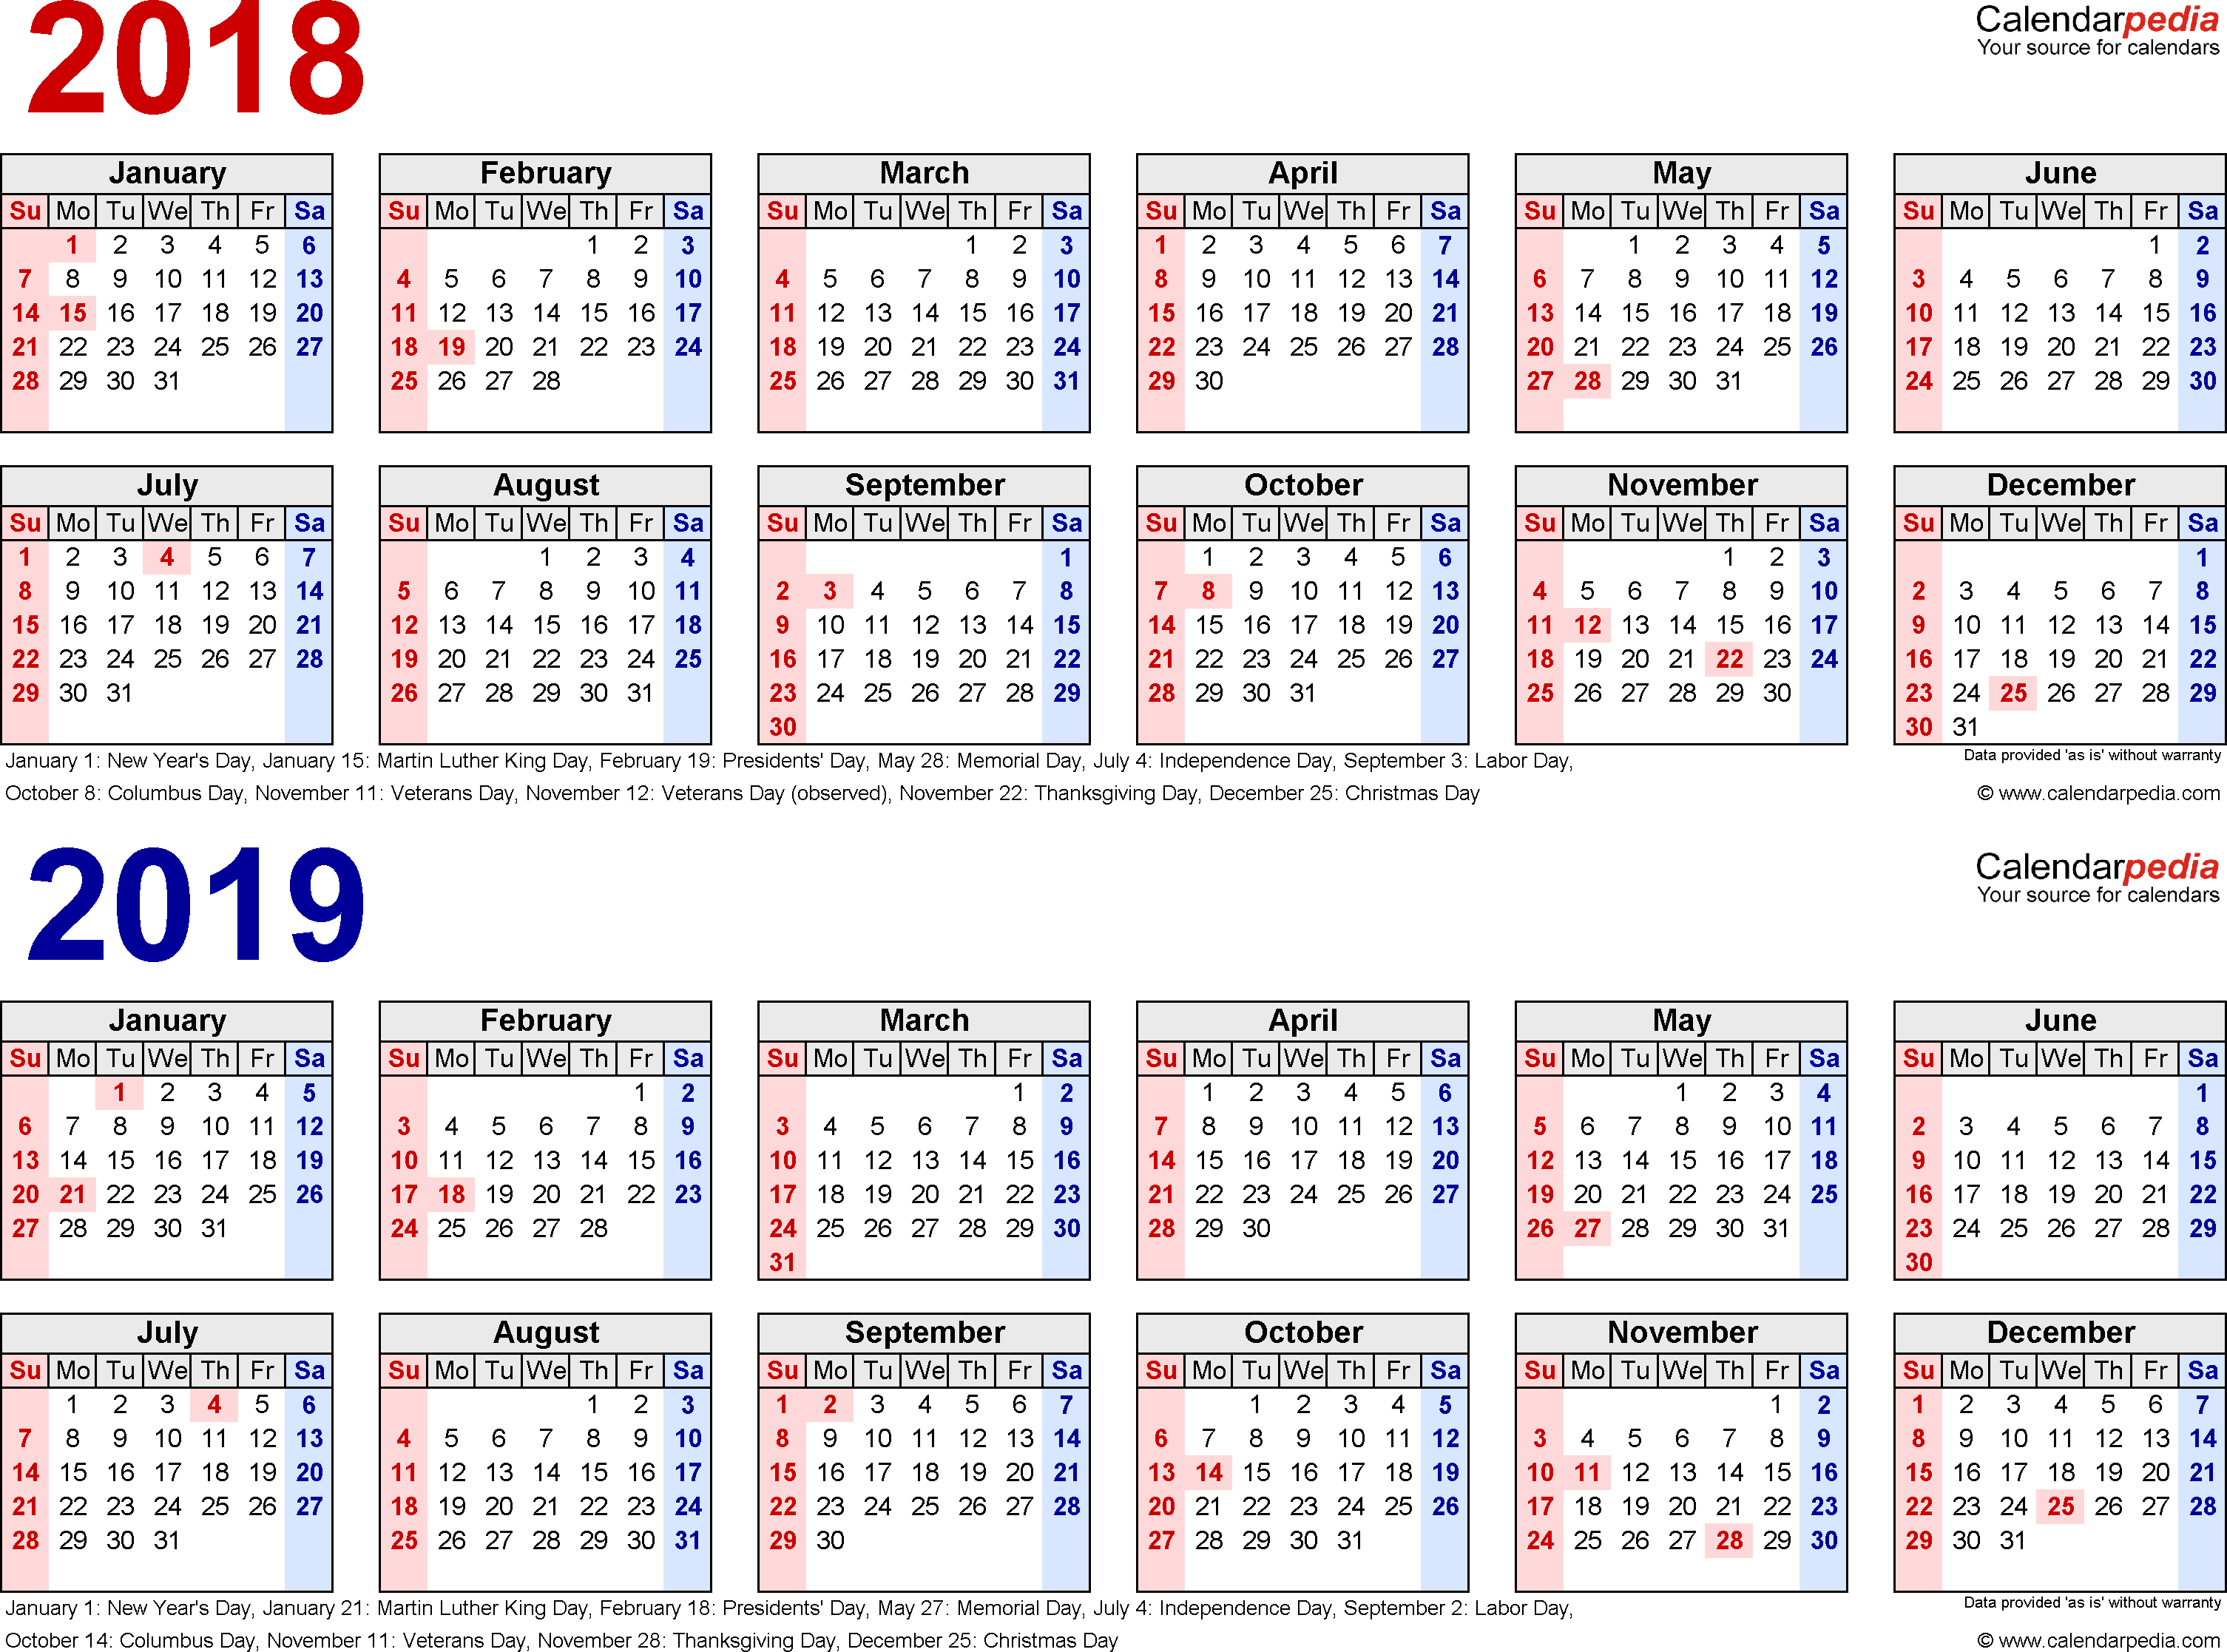 2018 2019 calendar free printable two year pdf calendars